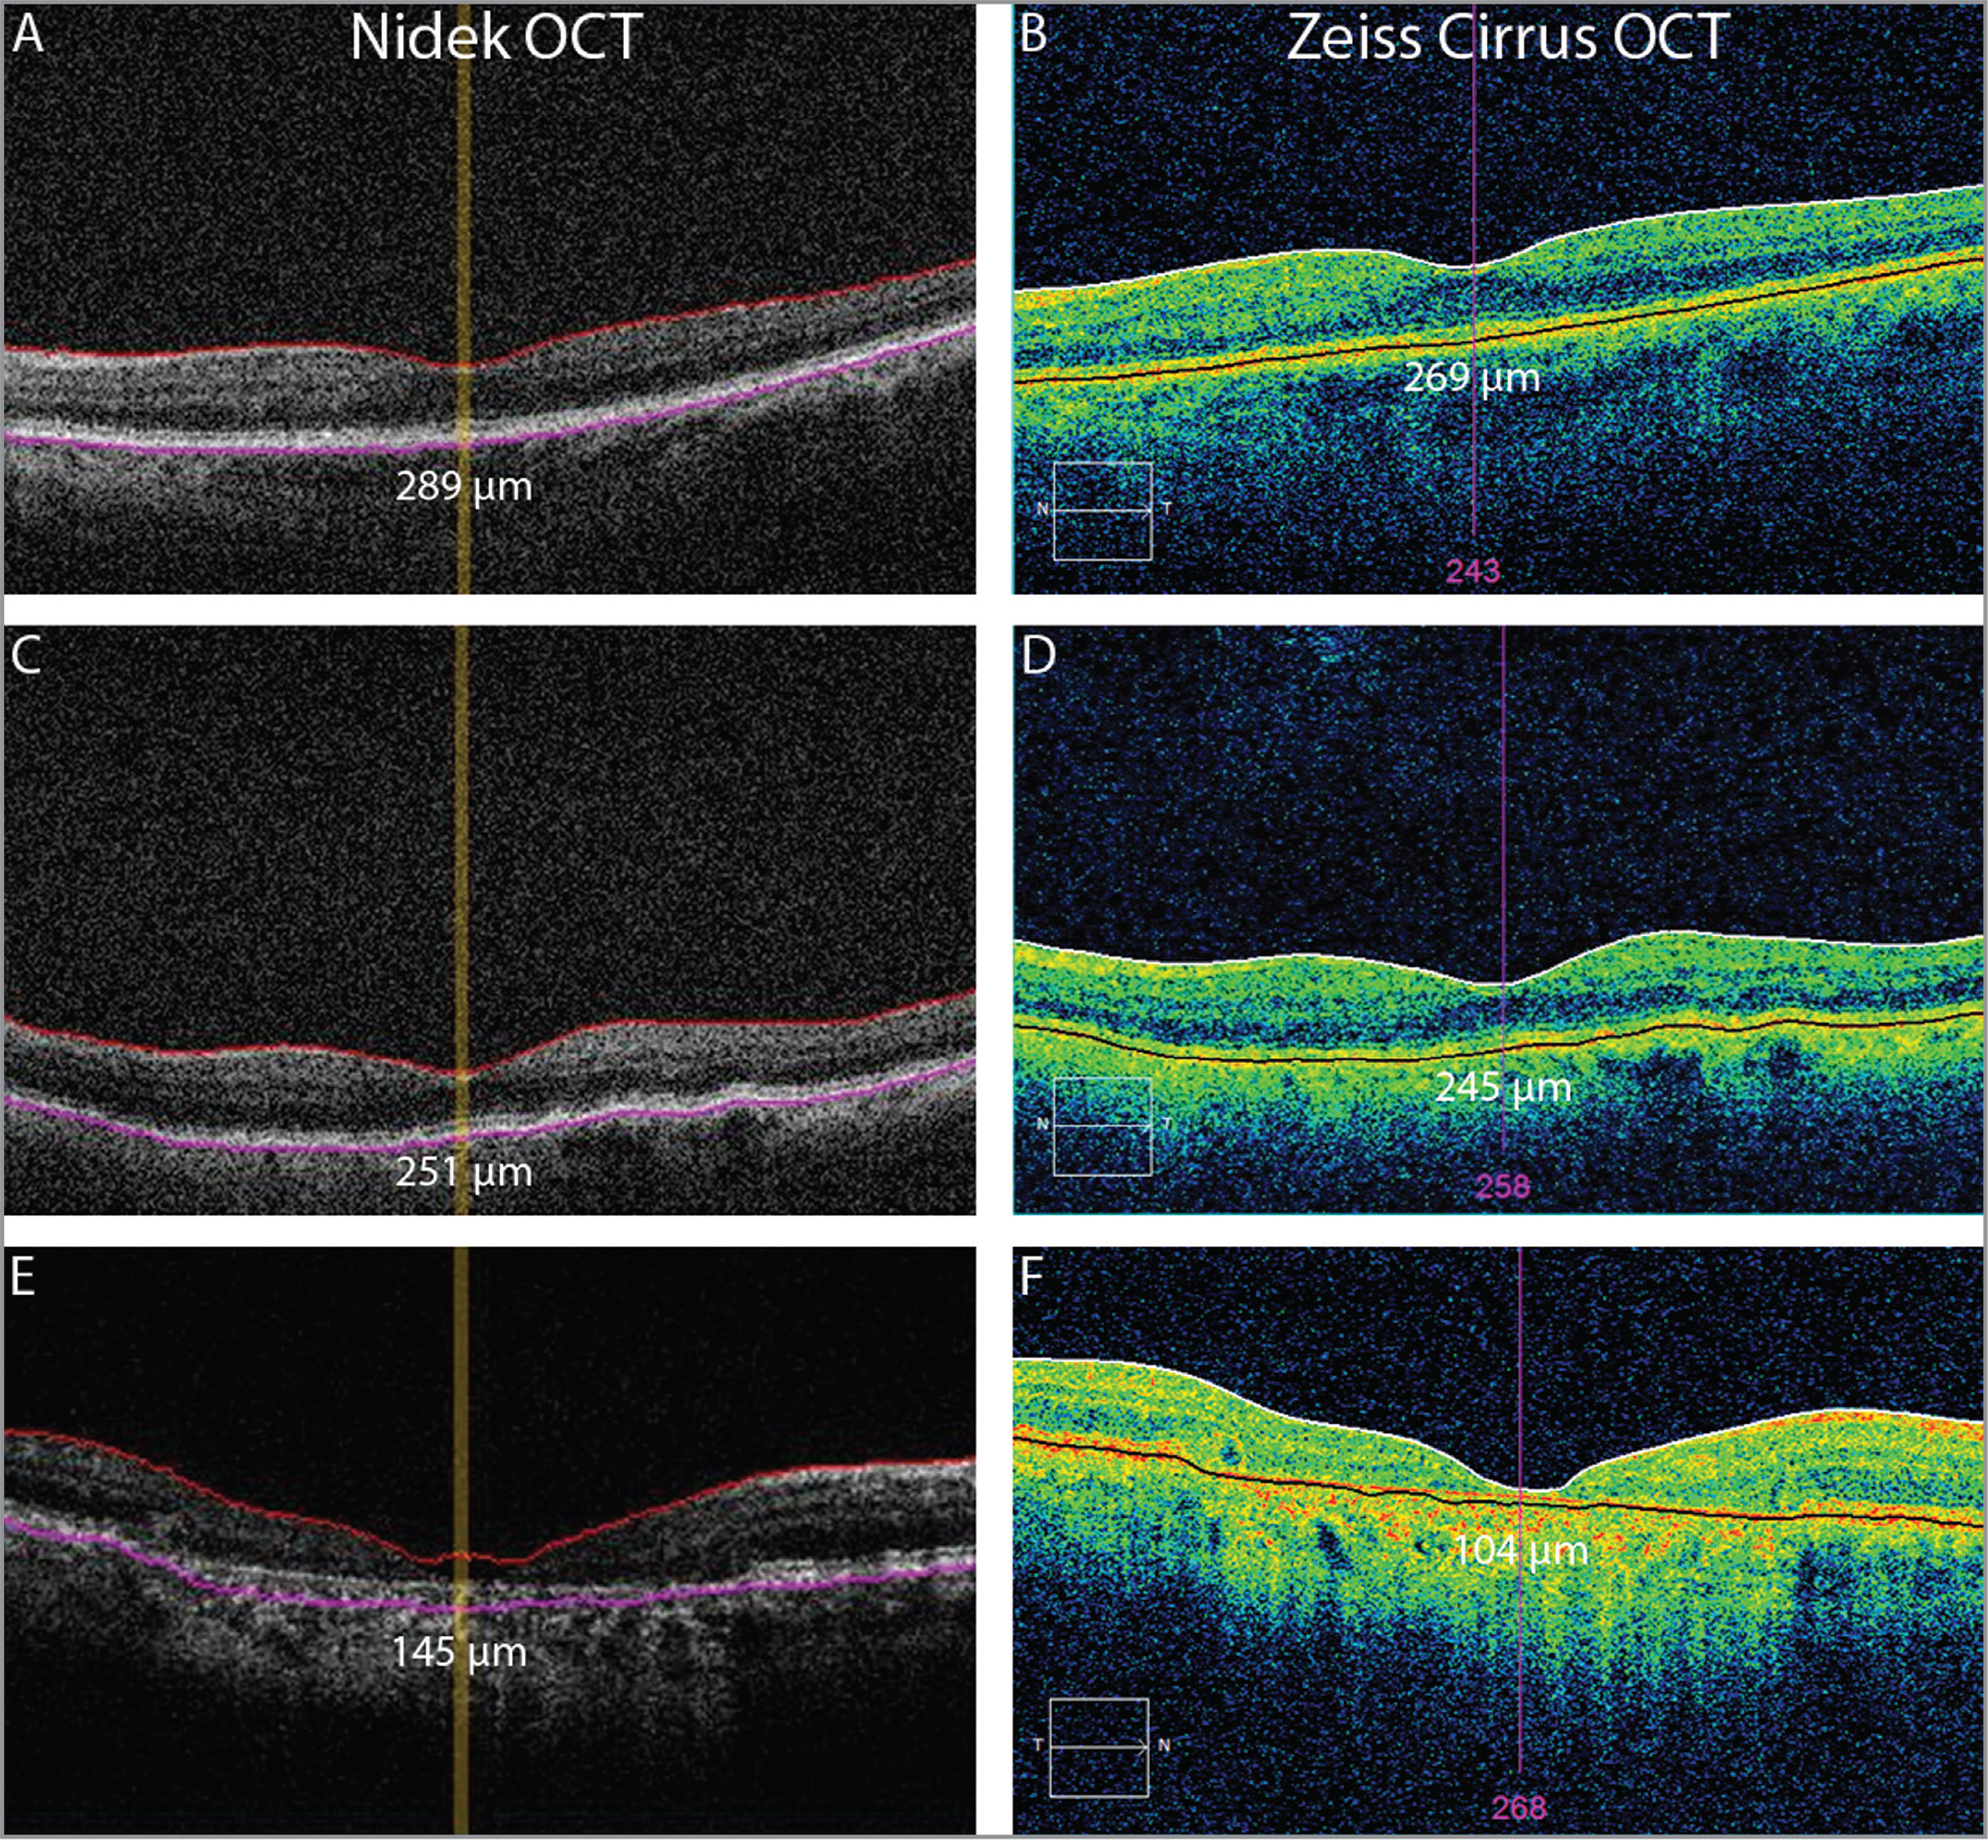 Positioning of retinal boundaries in the Nidek (A, C, E) and Zeiss Cirrus (B, D, F) optical coherence tomography (OCT) devices, (A, B) to generate the mean of the difference between measurements of the two OCT devices in an eye affected by early age-related macular degeneration (AMD) (drusen). The distance used by the two algorithms to calculate the macular thickness is indicated by the red arrow. Both instruments set the inner retinal boundary at the level of the internal limiting membrane (ILM). The outer retinal boundary is set by Nidek OCT at the external limit of retinal pigment epithelium (RPE), whereas the Zeiss Cirrus OCT identifies this boundary in the middle/within the RPE layer. Below the red arrows, we reported the corresponding mean macular thickness from the central circular 1,000 μm area; (C, D) the minimum difference in macular thickness evaluated by Nidek and Zeiss Cirrus OCT in a case of early AMD (drusen). Note the slightly different positioning of the retinal boundaries in both OCT devices, leading to a small difference in macular thickness measurement. (E,F) The maximum difference in macular thickness evaluated by Nidek and Zeiss Cirrus OCT in a case of geographic atrophy involving the foveal center. Note the different positioning of both retinal boundaries in both OCT devices, leading to a big difference in macular thickness measurement.